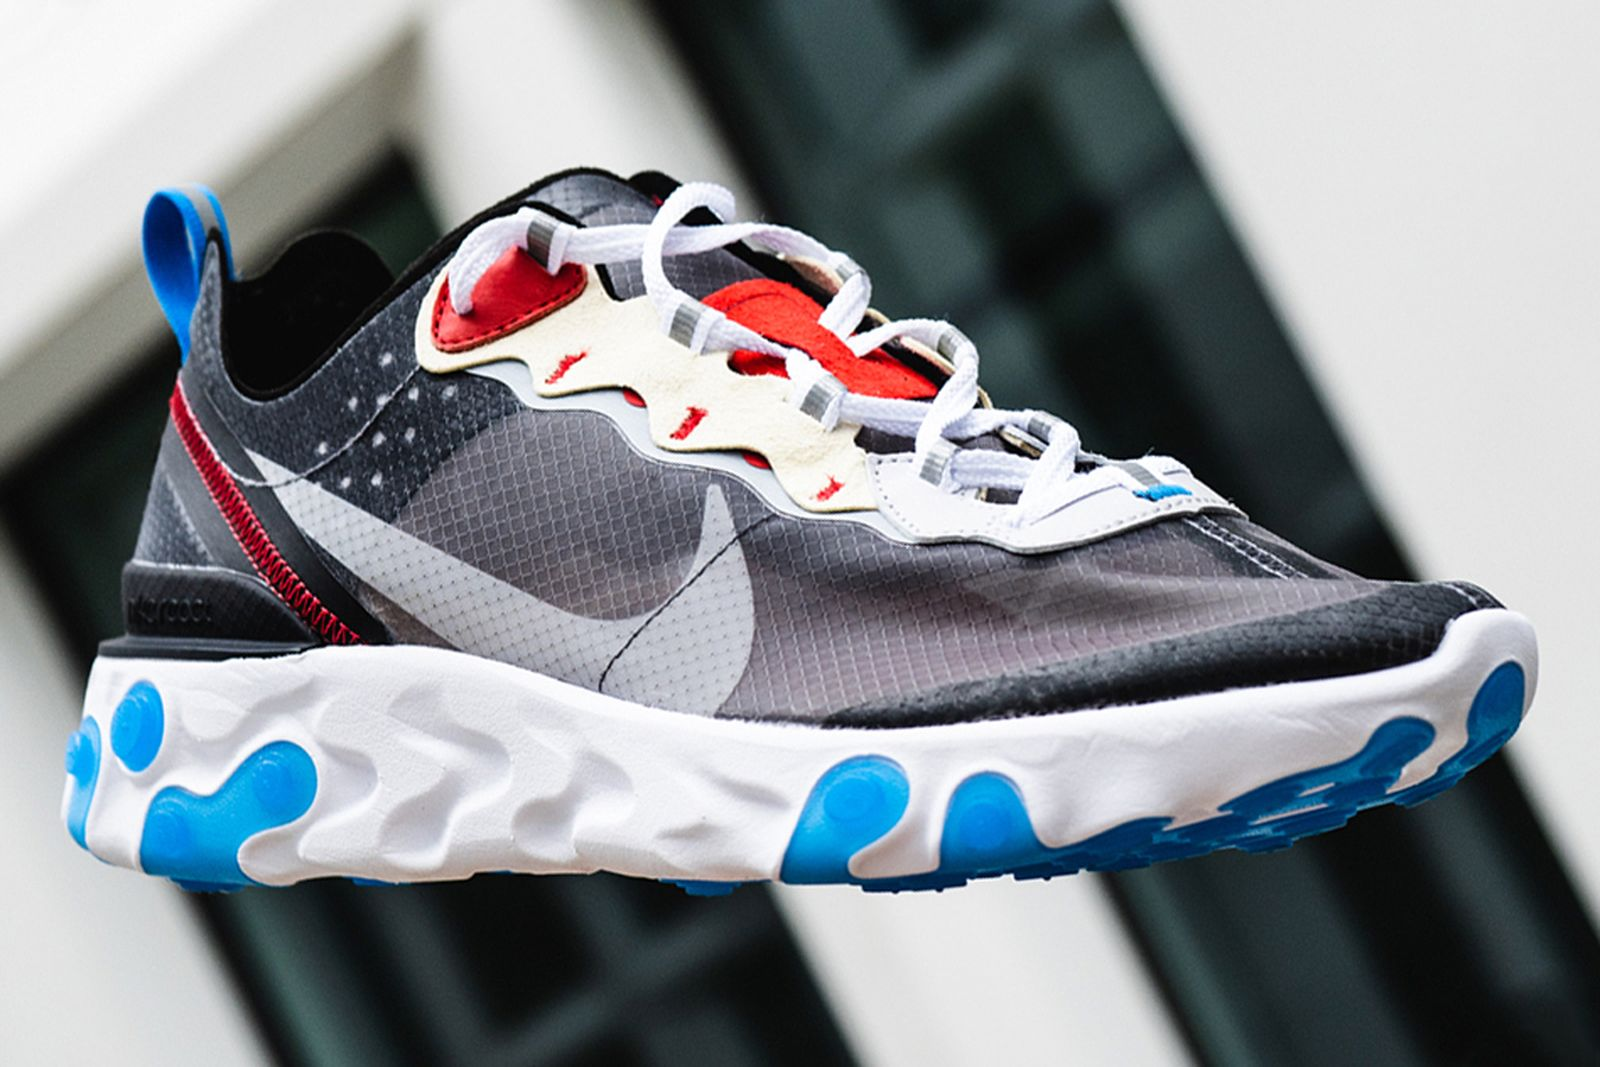 New Nike React Element 87 & More of the Best Instagram Sneakers